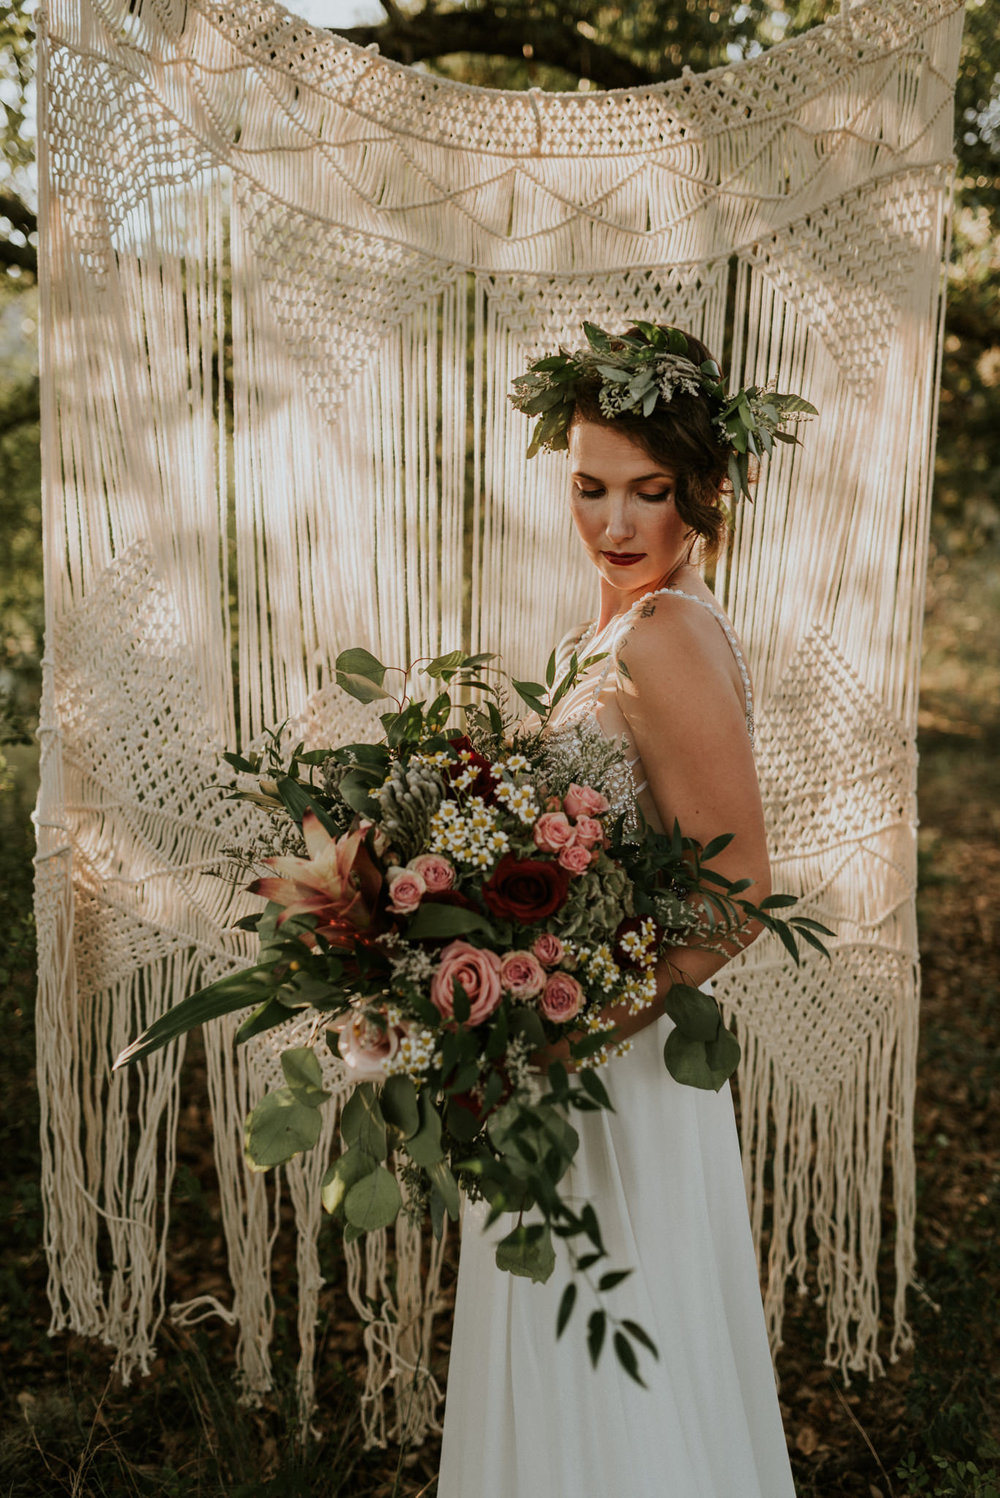 Bohemian-Floral-Greenery-Macrame-Southwestern-Desert-Elopement-Enchanted-Rock-Natural-Park-Kerlyn-Van-Gelder-Photography-Austin-Wedding-Photographer